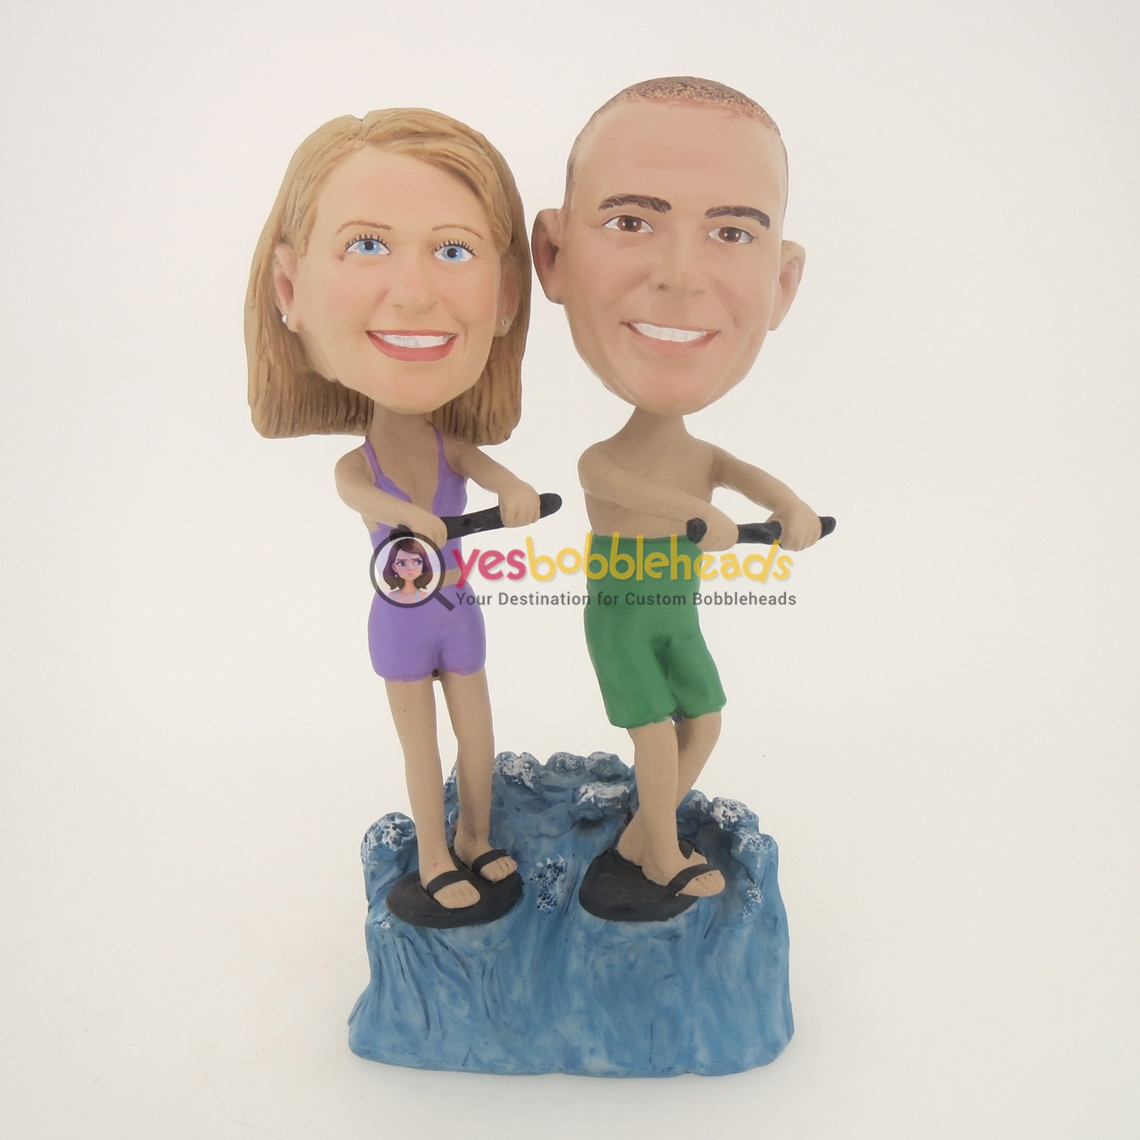 Picture of Custom Bobblehead Doll: Surfing Couple